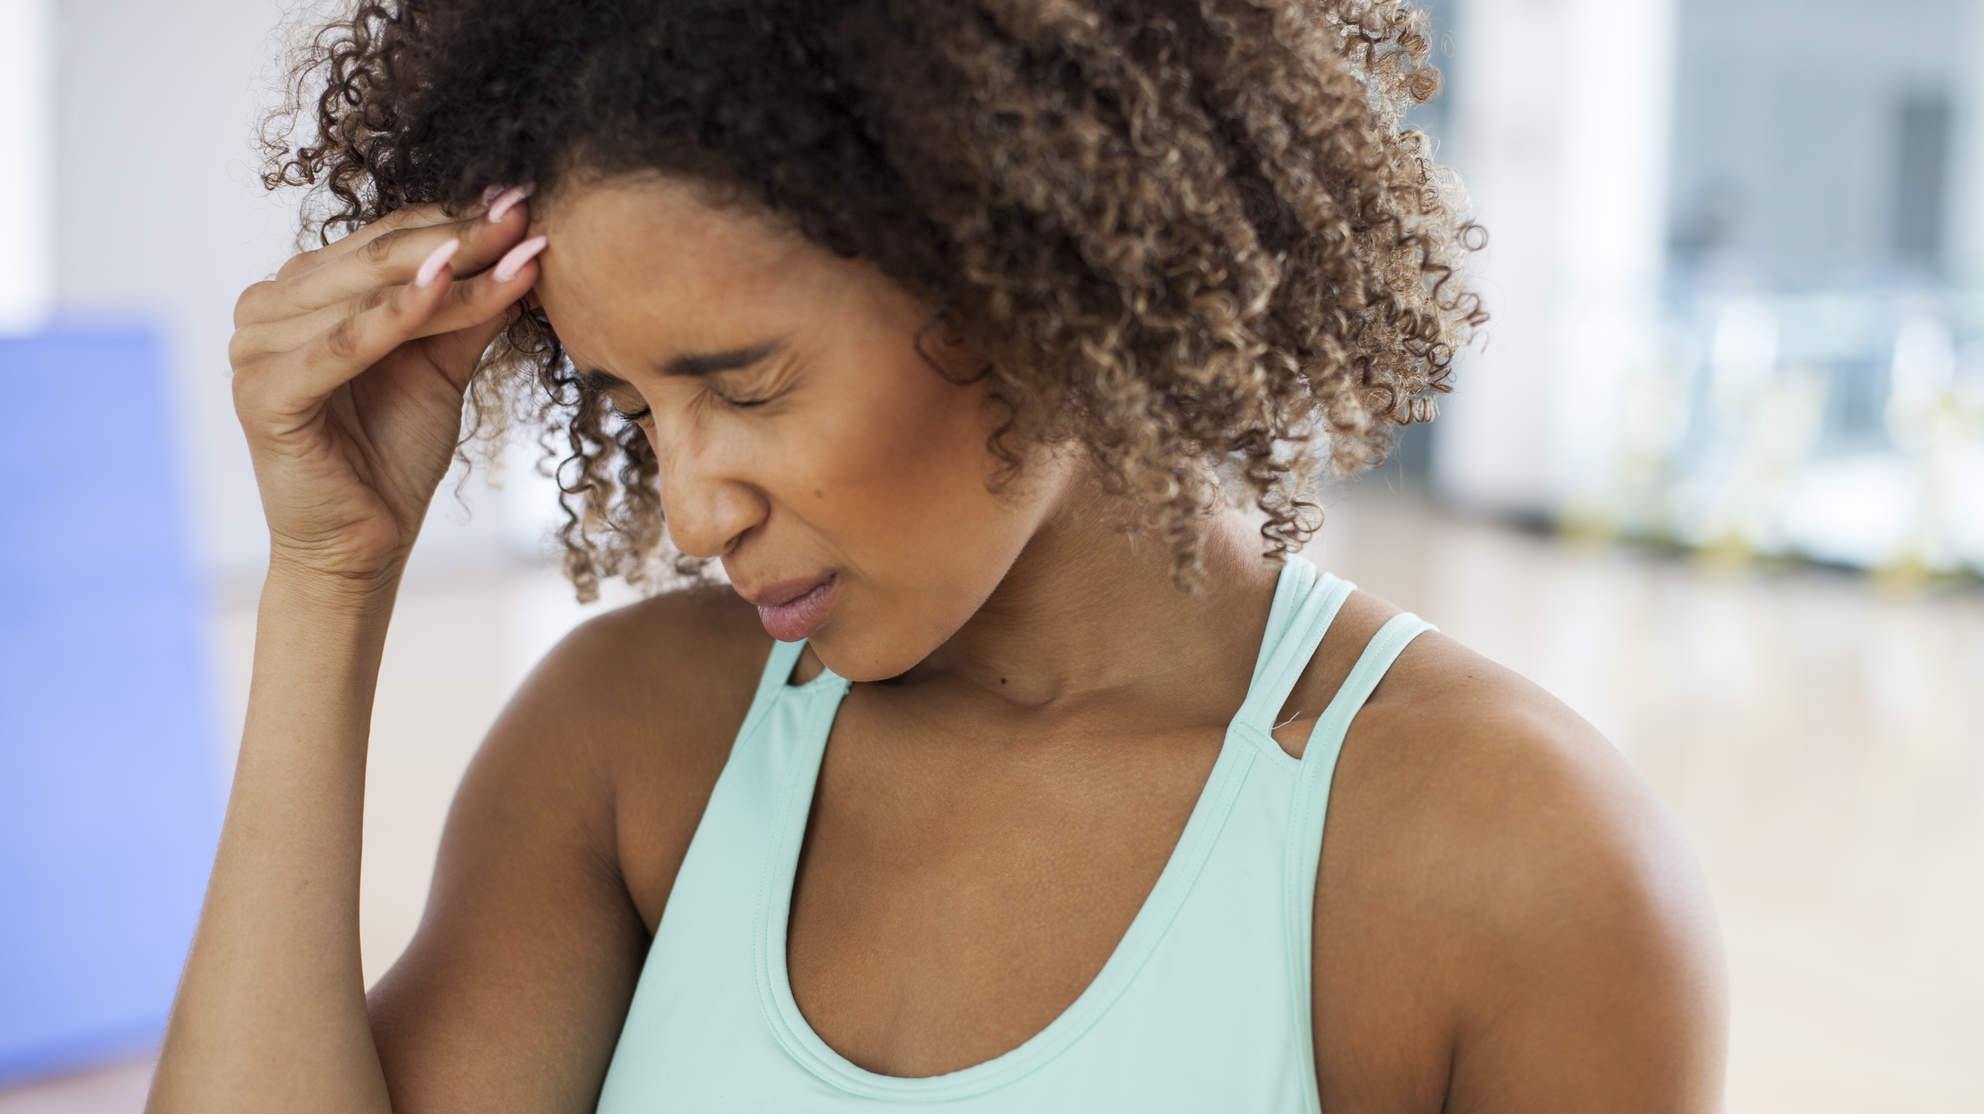 What to Do When a Headache Strikes in the Middle of a Workout